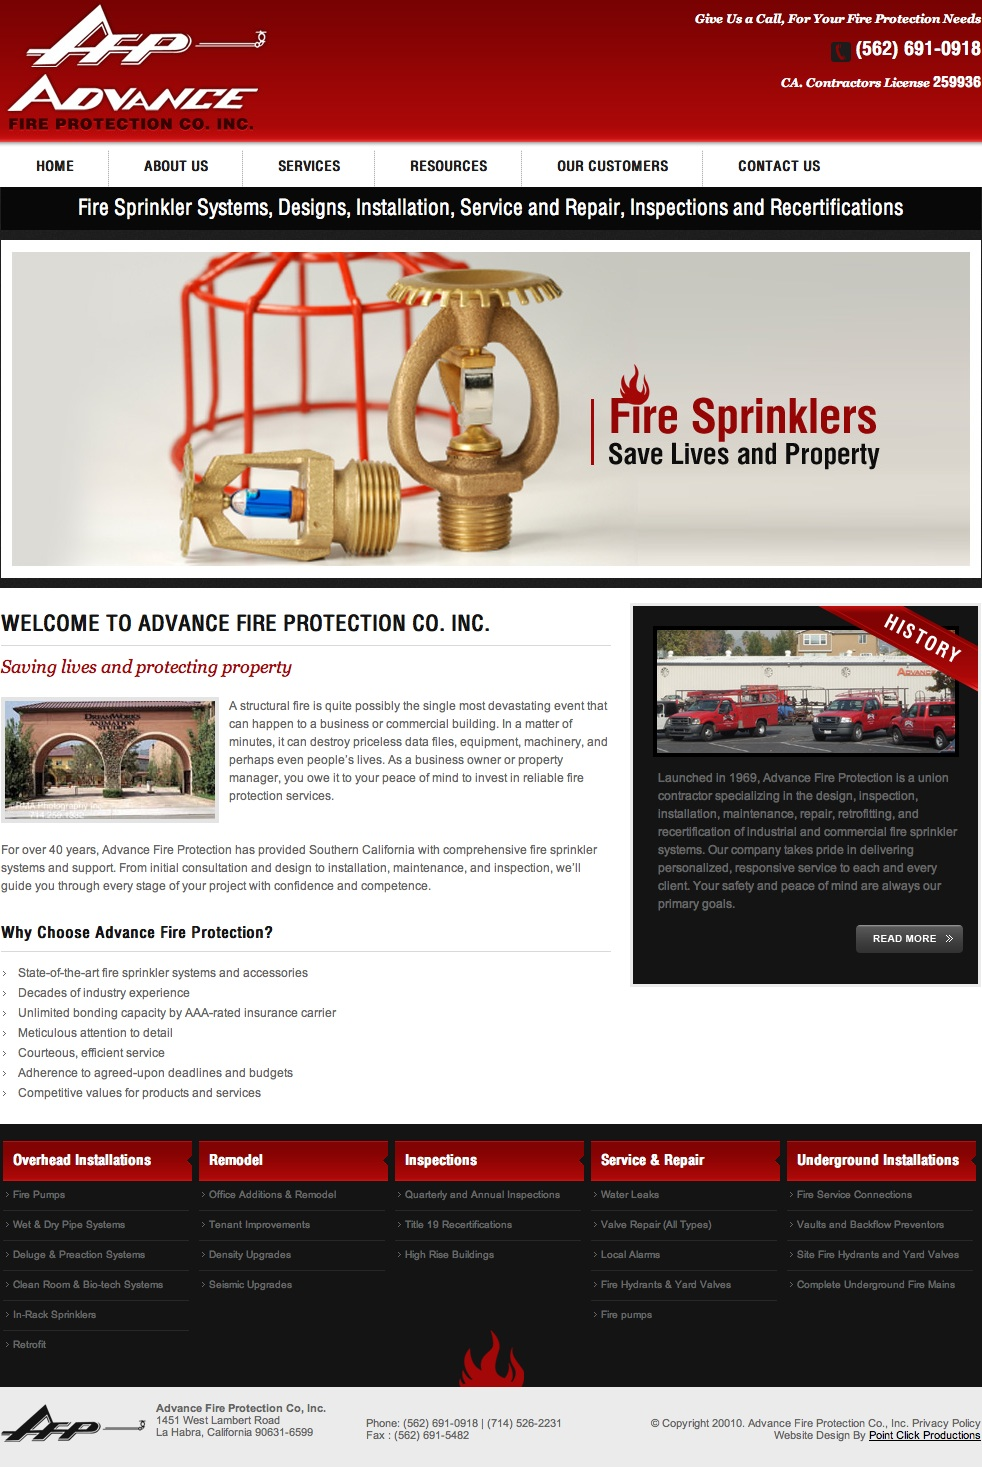 Home Page Copy: Fire Protection